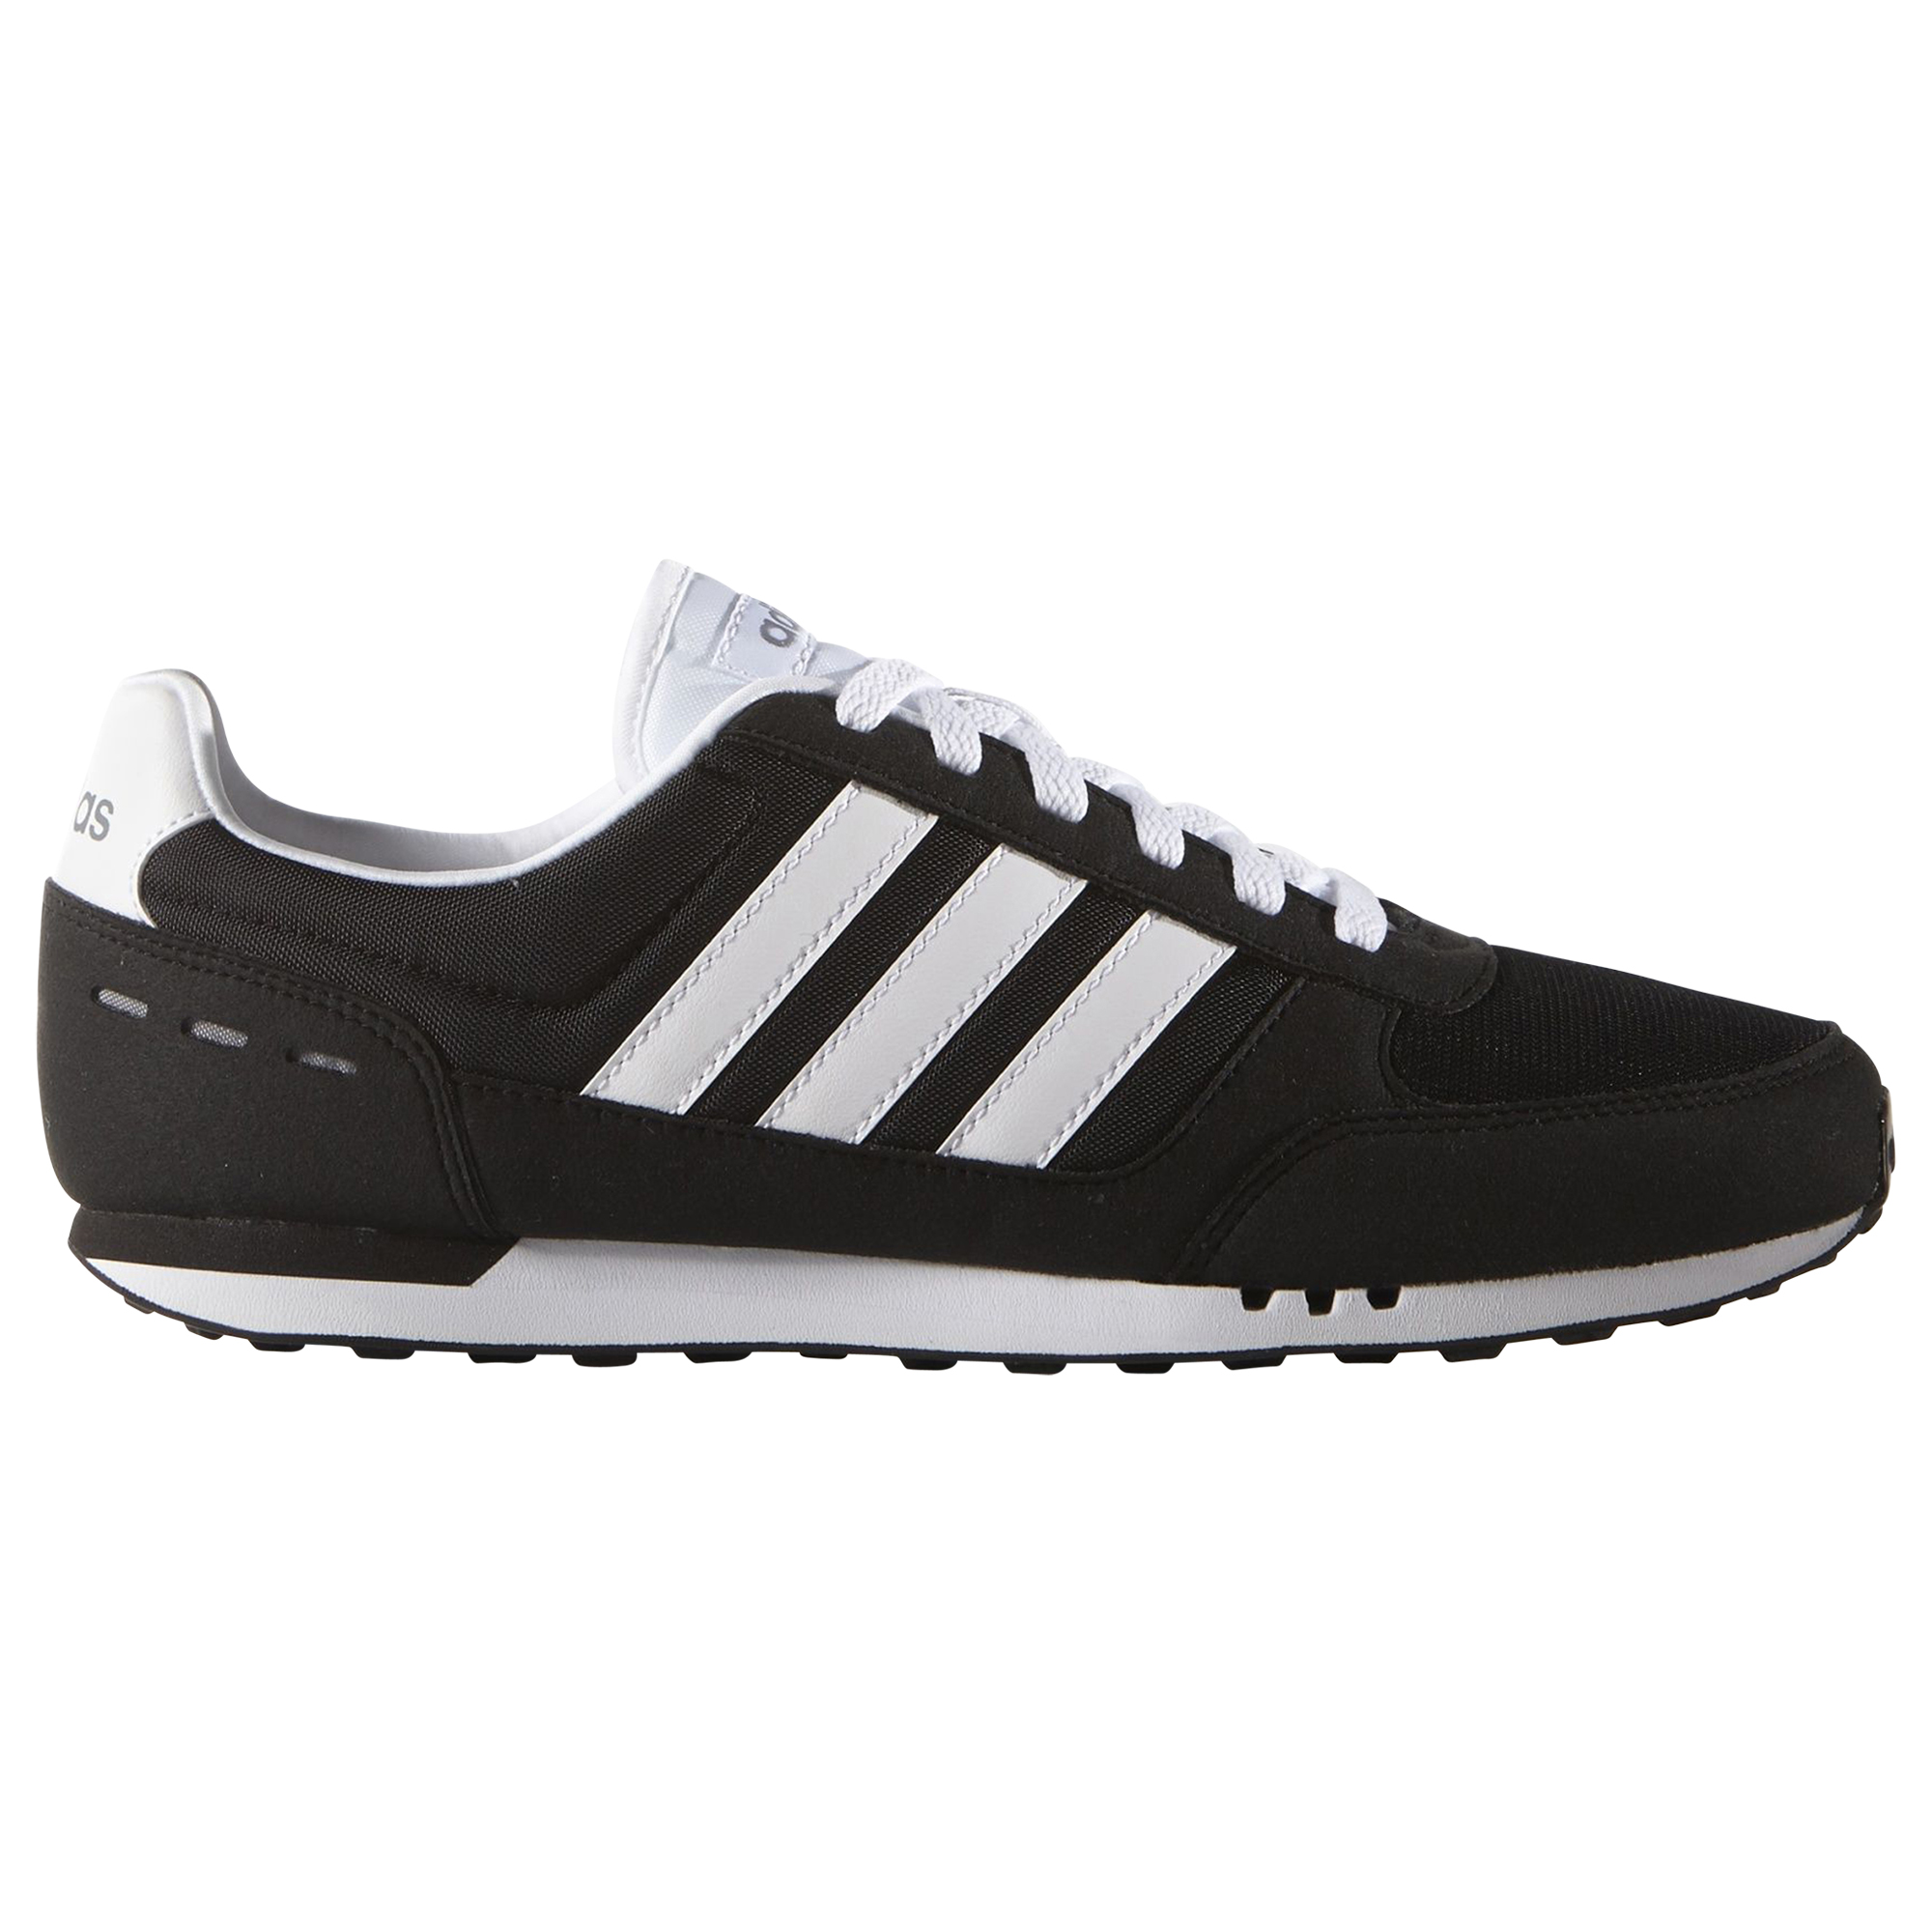 adidas neo city racer schuhe turnschuhe sneaker damen herren f99329. Black Bedroom Furniture Sets. Home Design Ideas